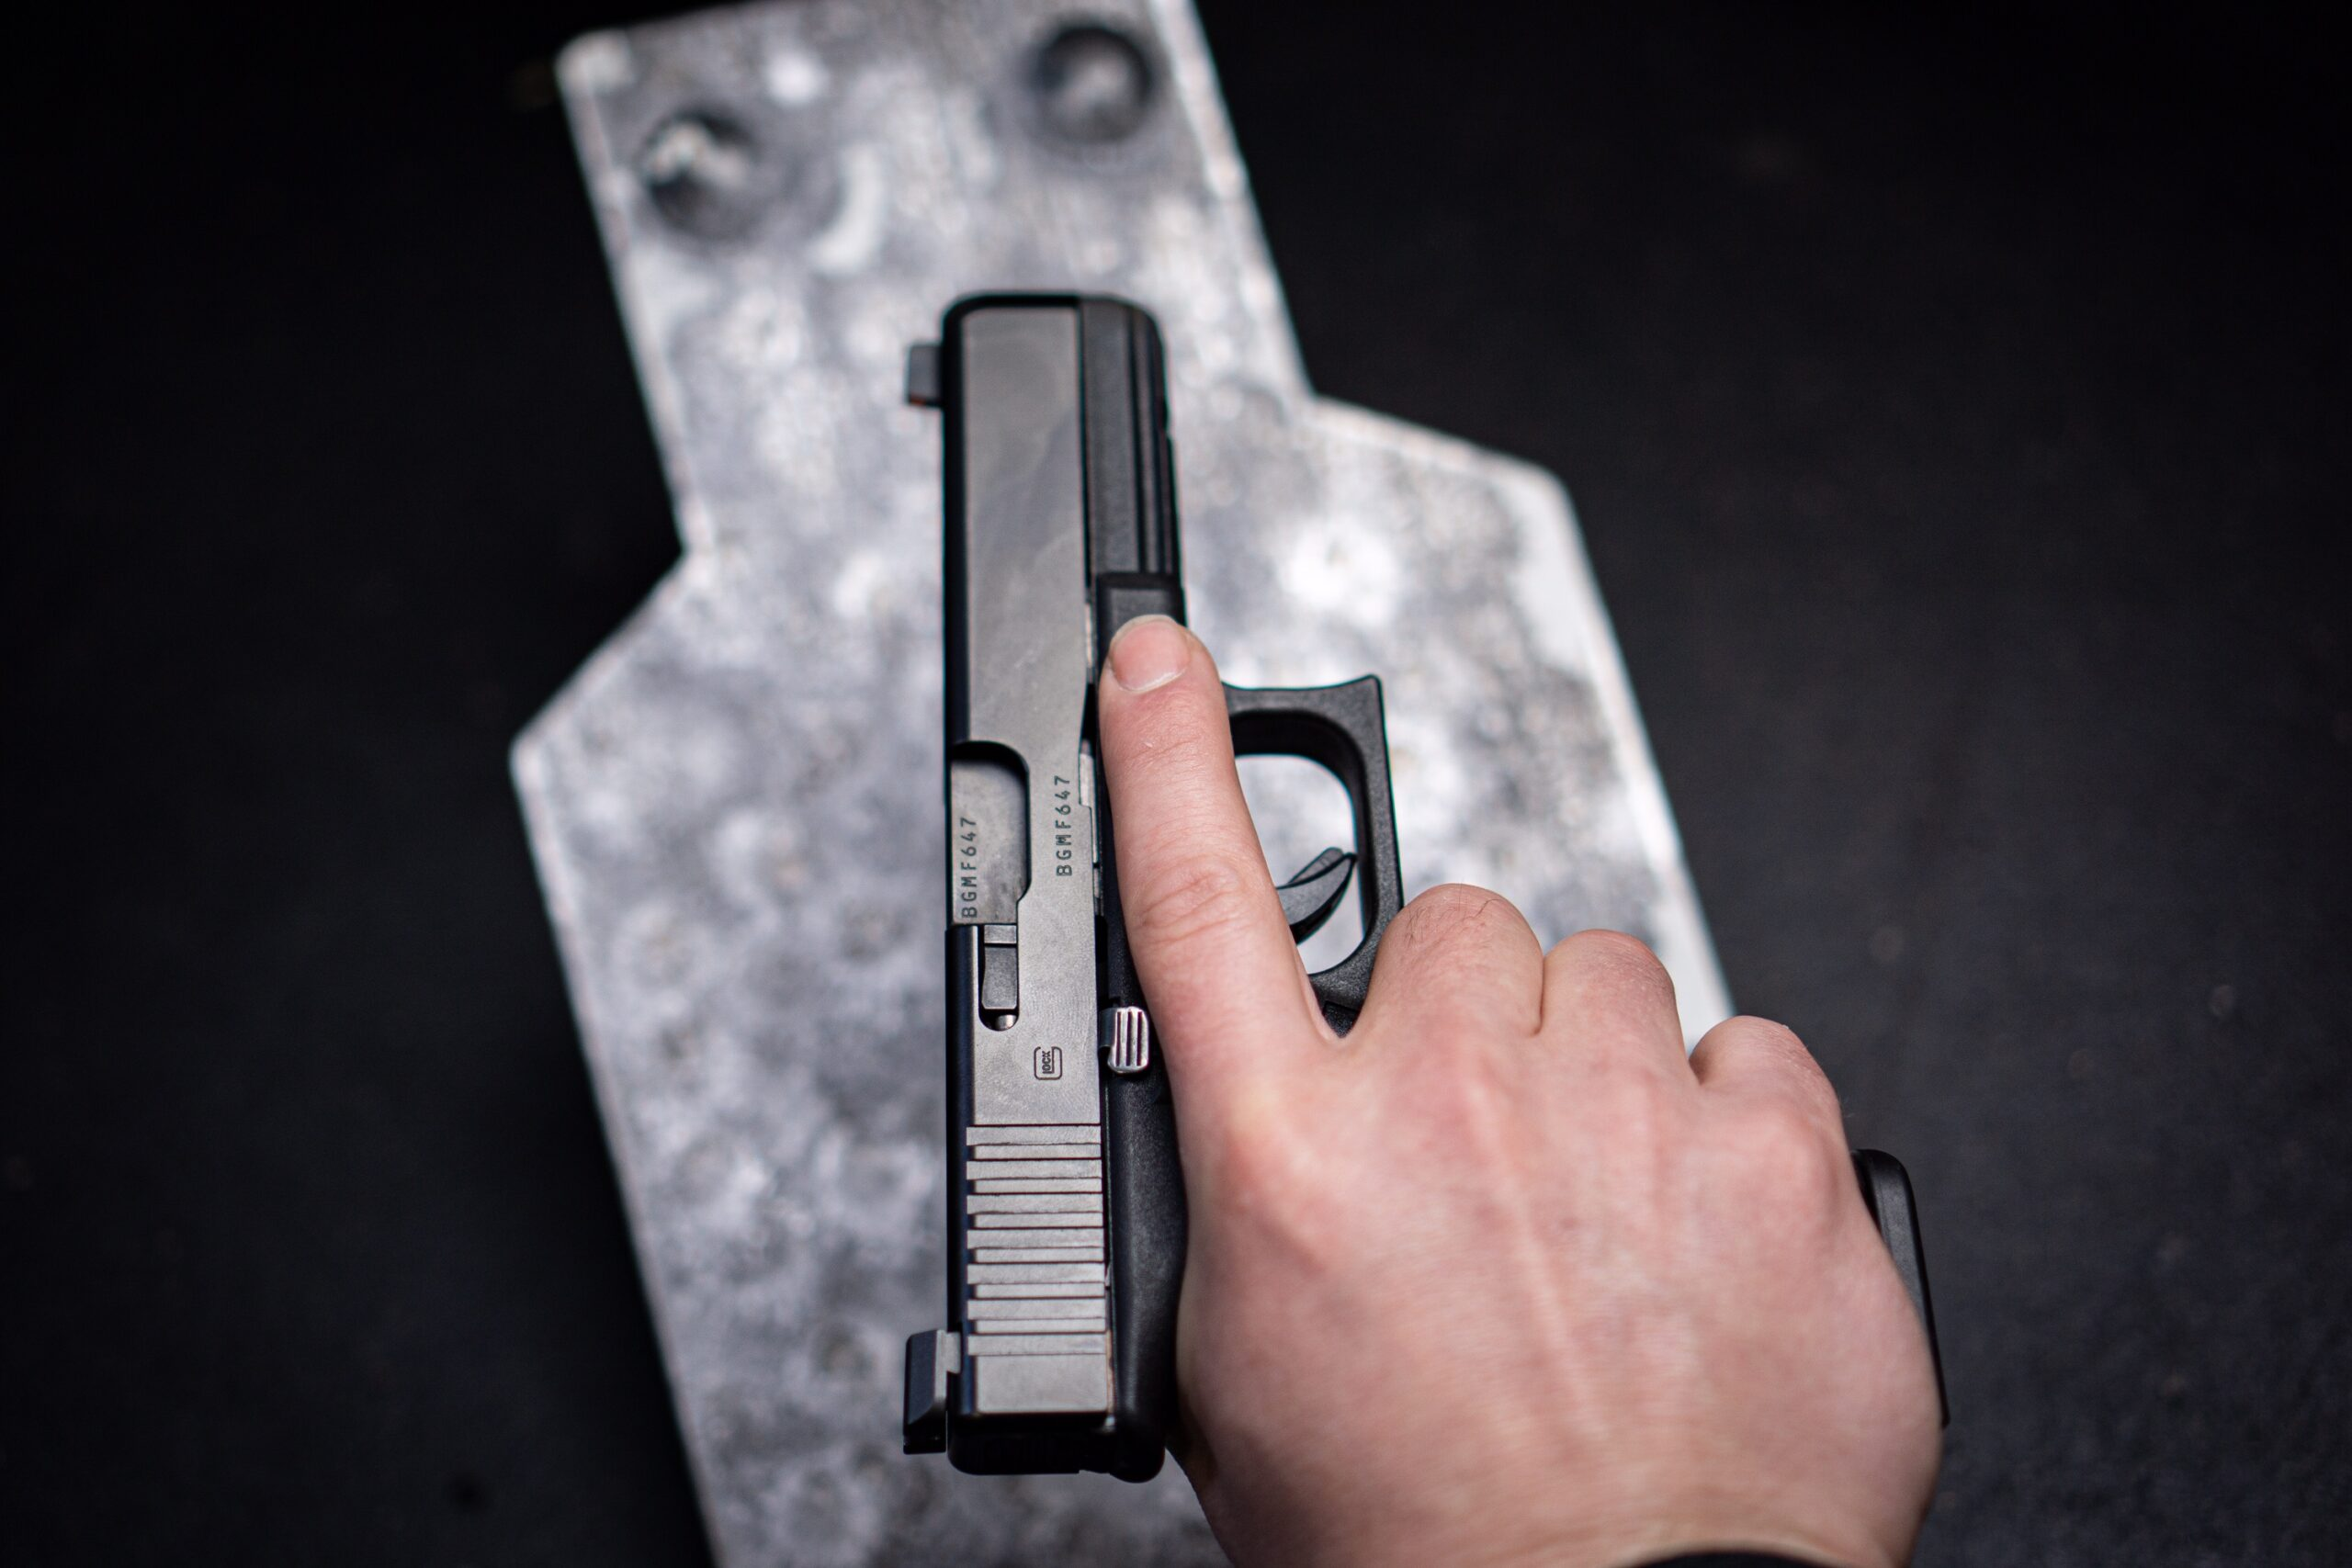 The author holding a Glock 17